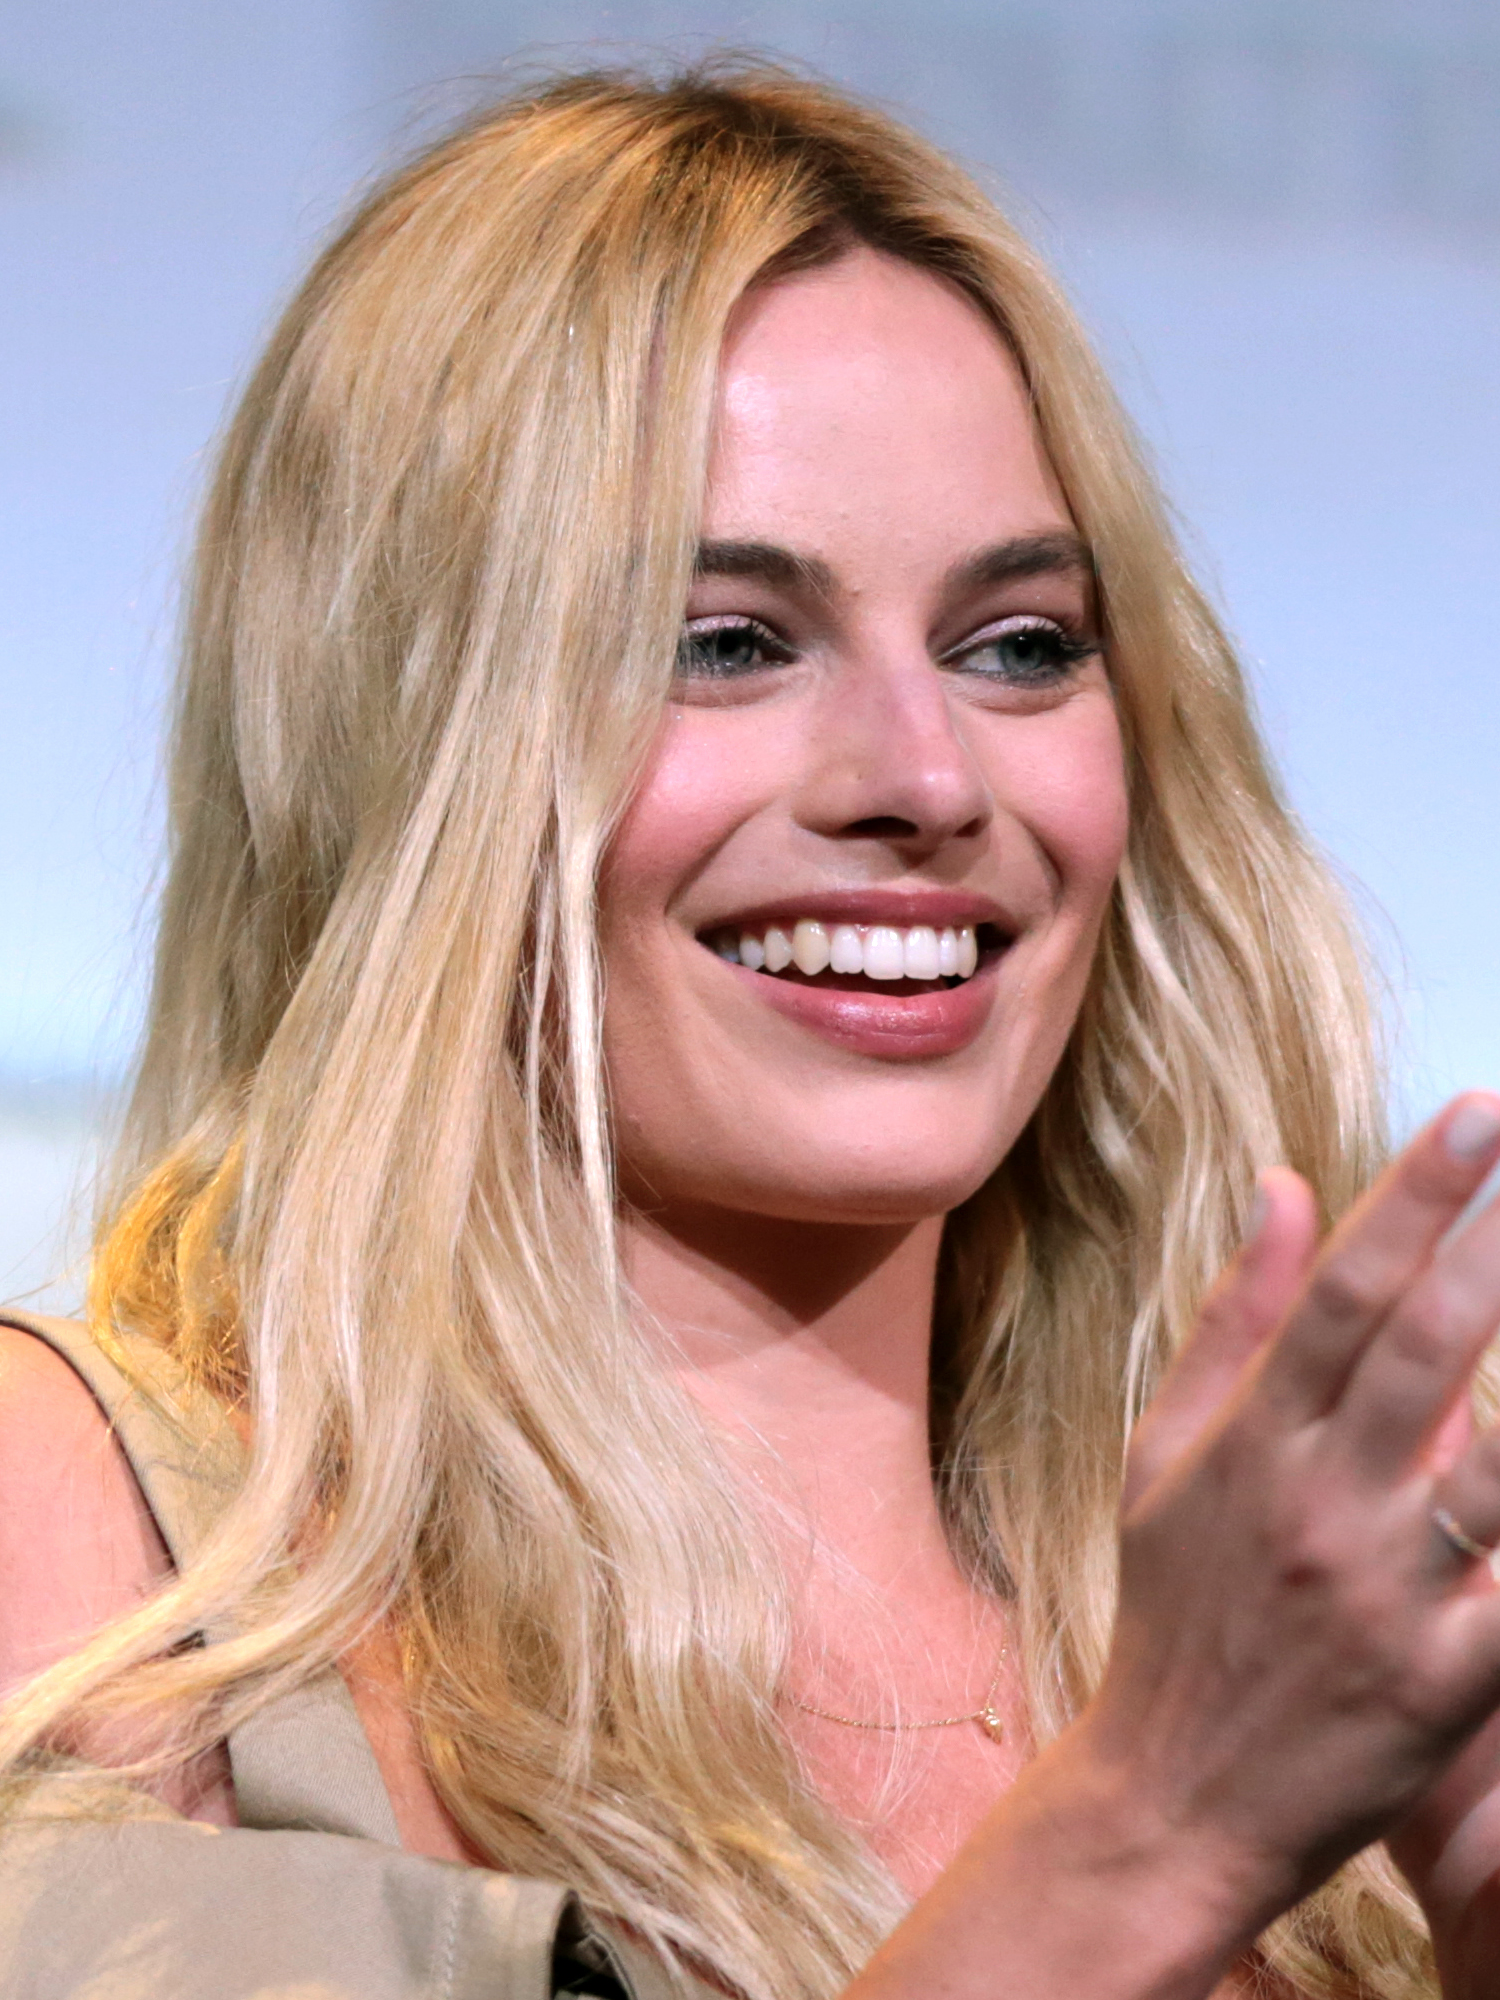 Pic Margot Robbie nude photos 2019